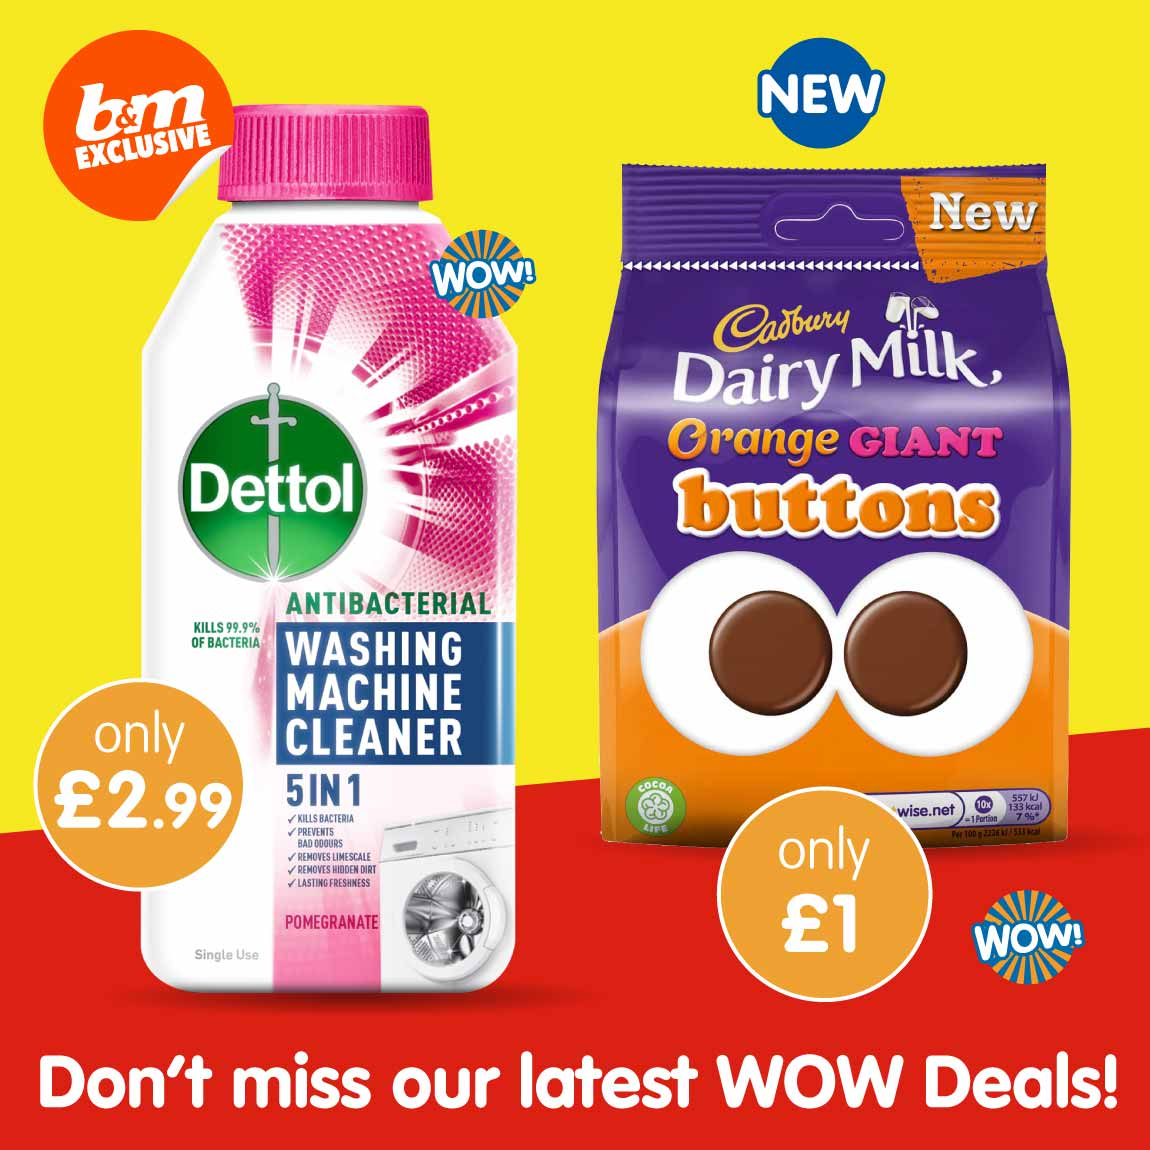 Latest Wow Deals at B&M.